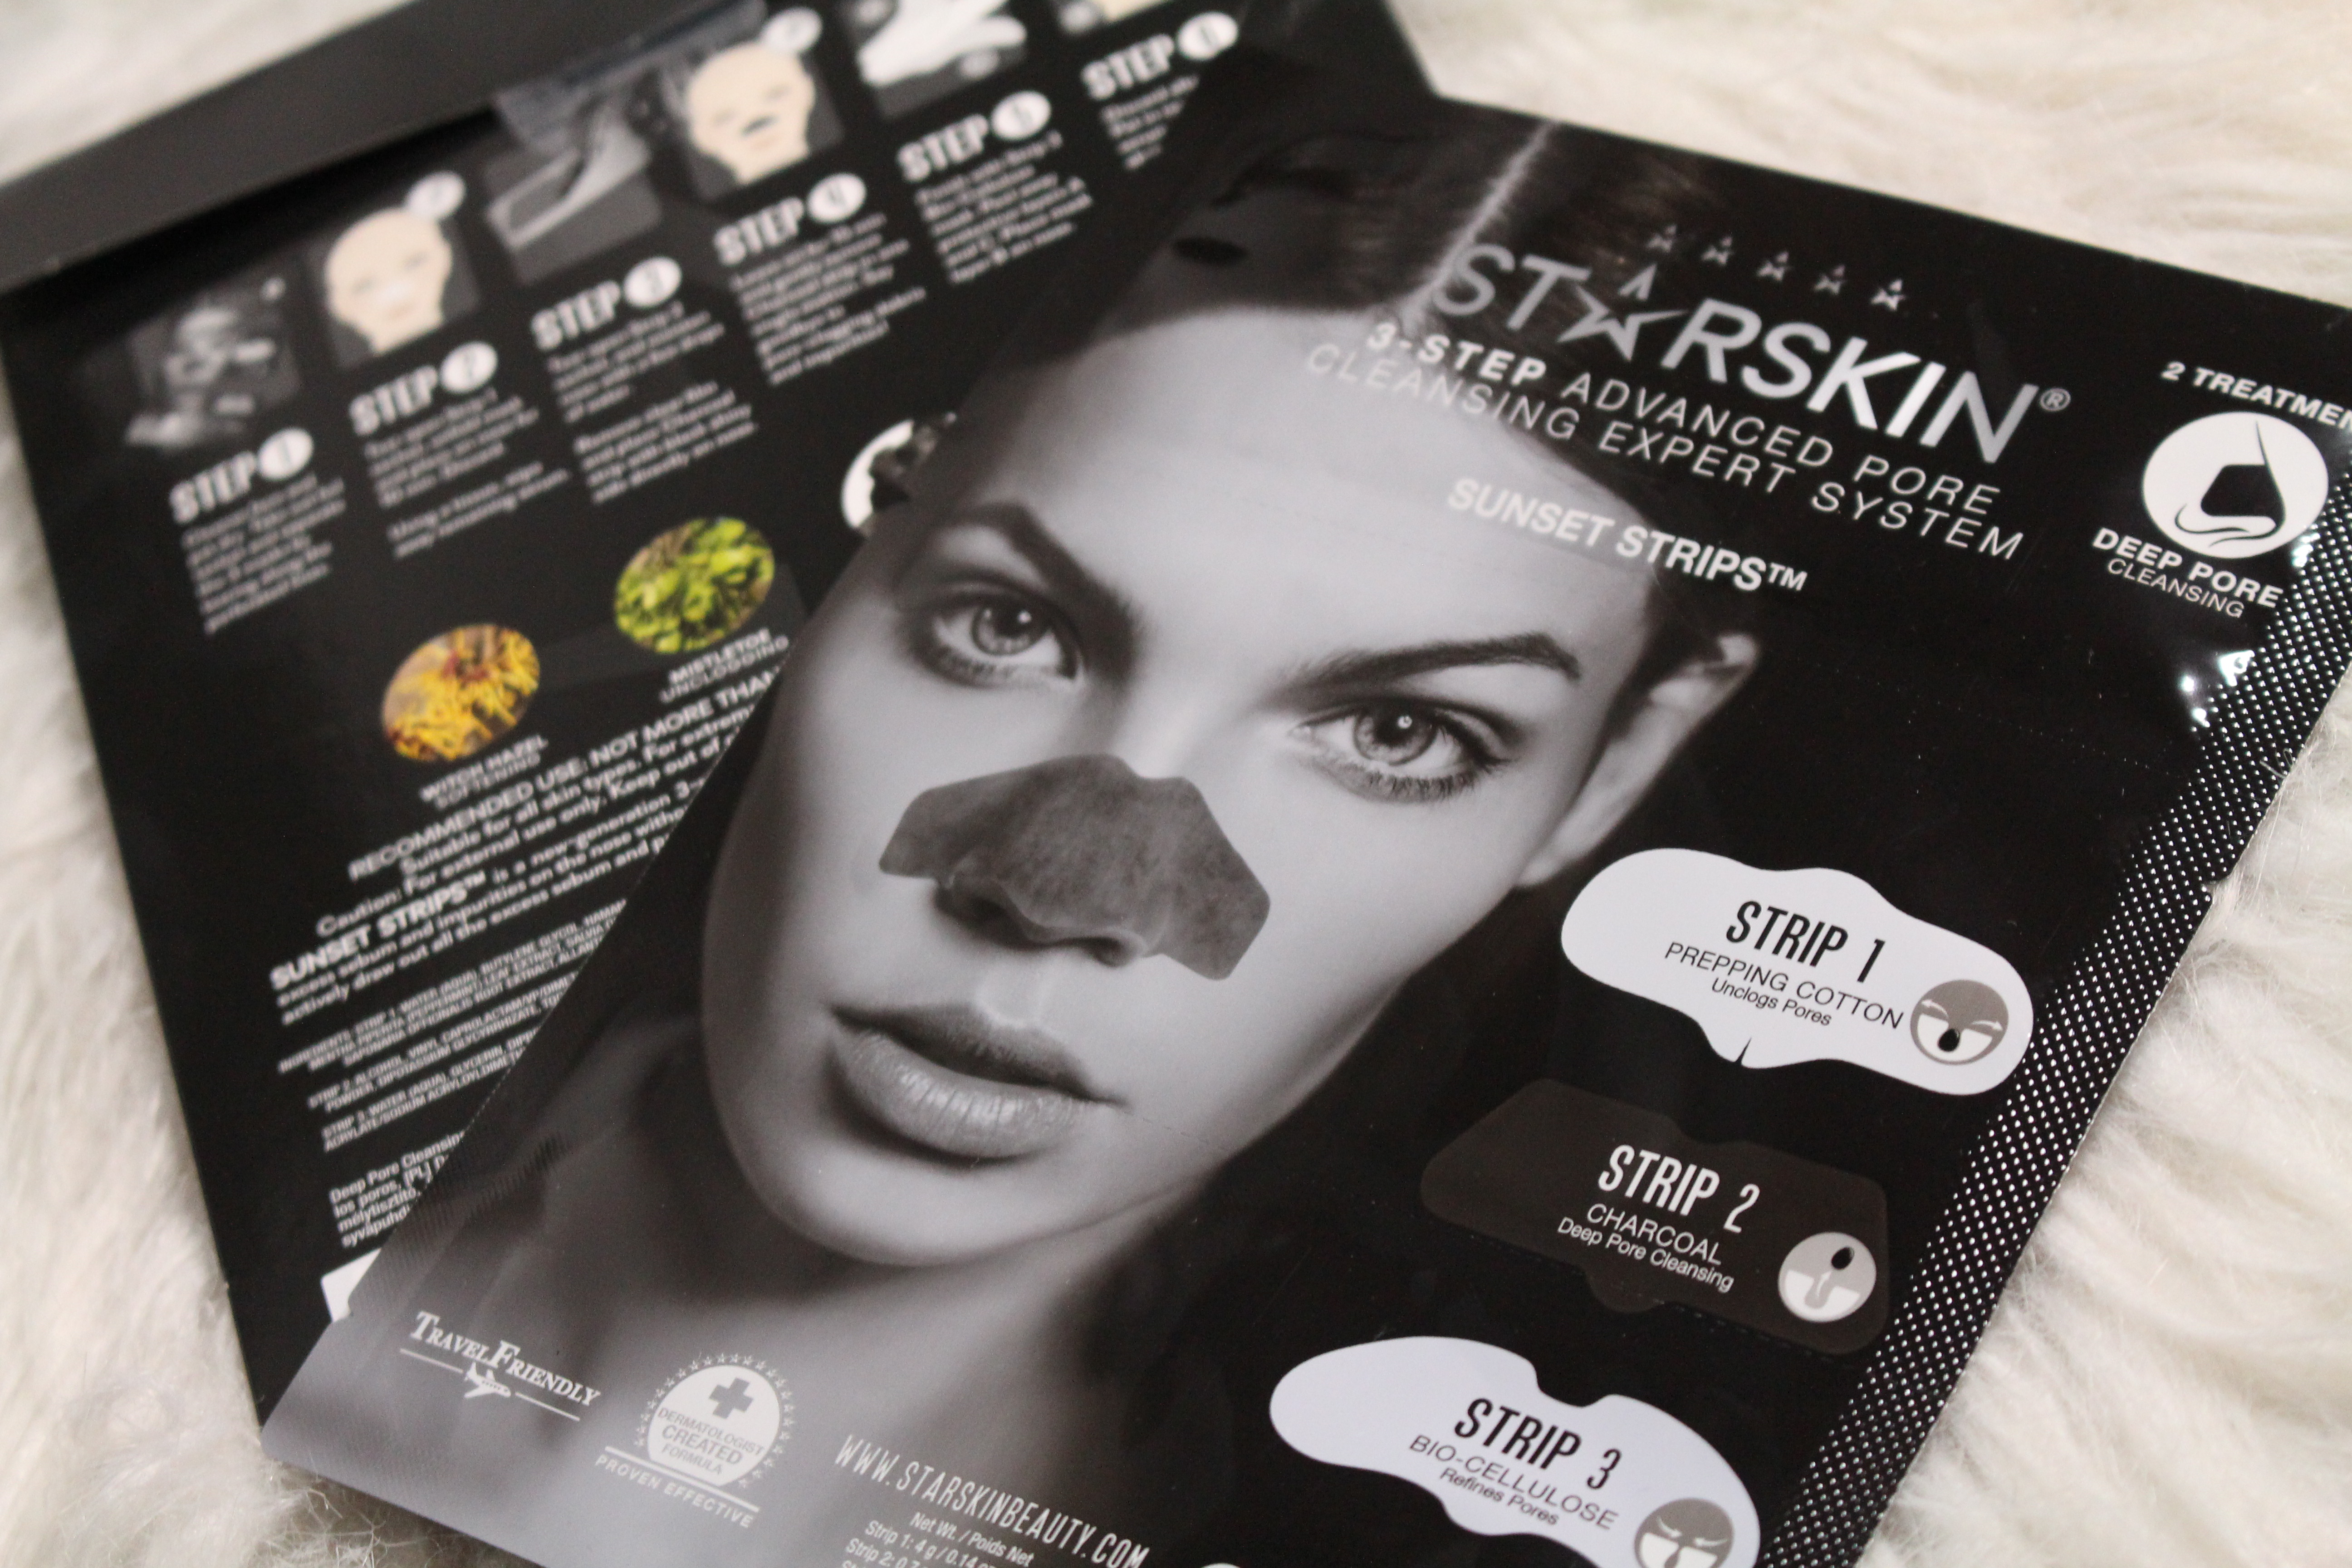 STARSKIN 3-step advanced pore cleansing Sunset Strips | Review